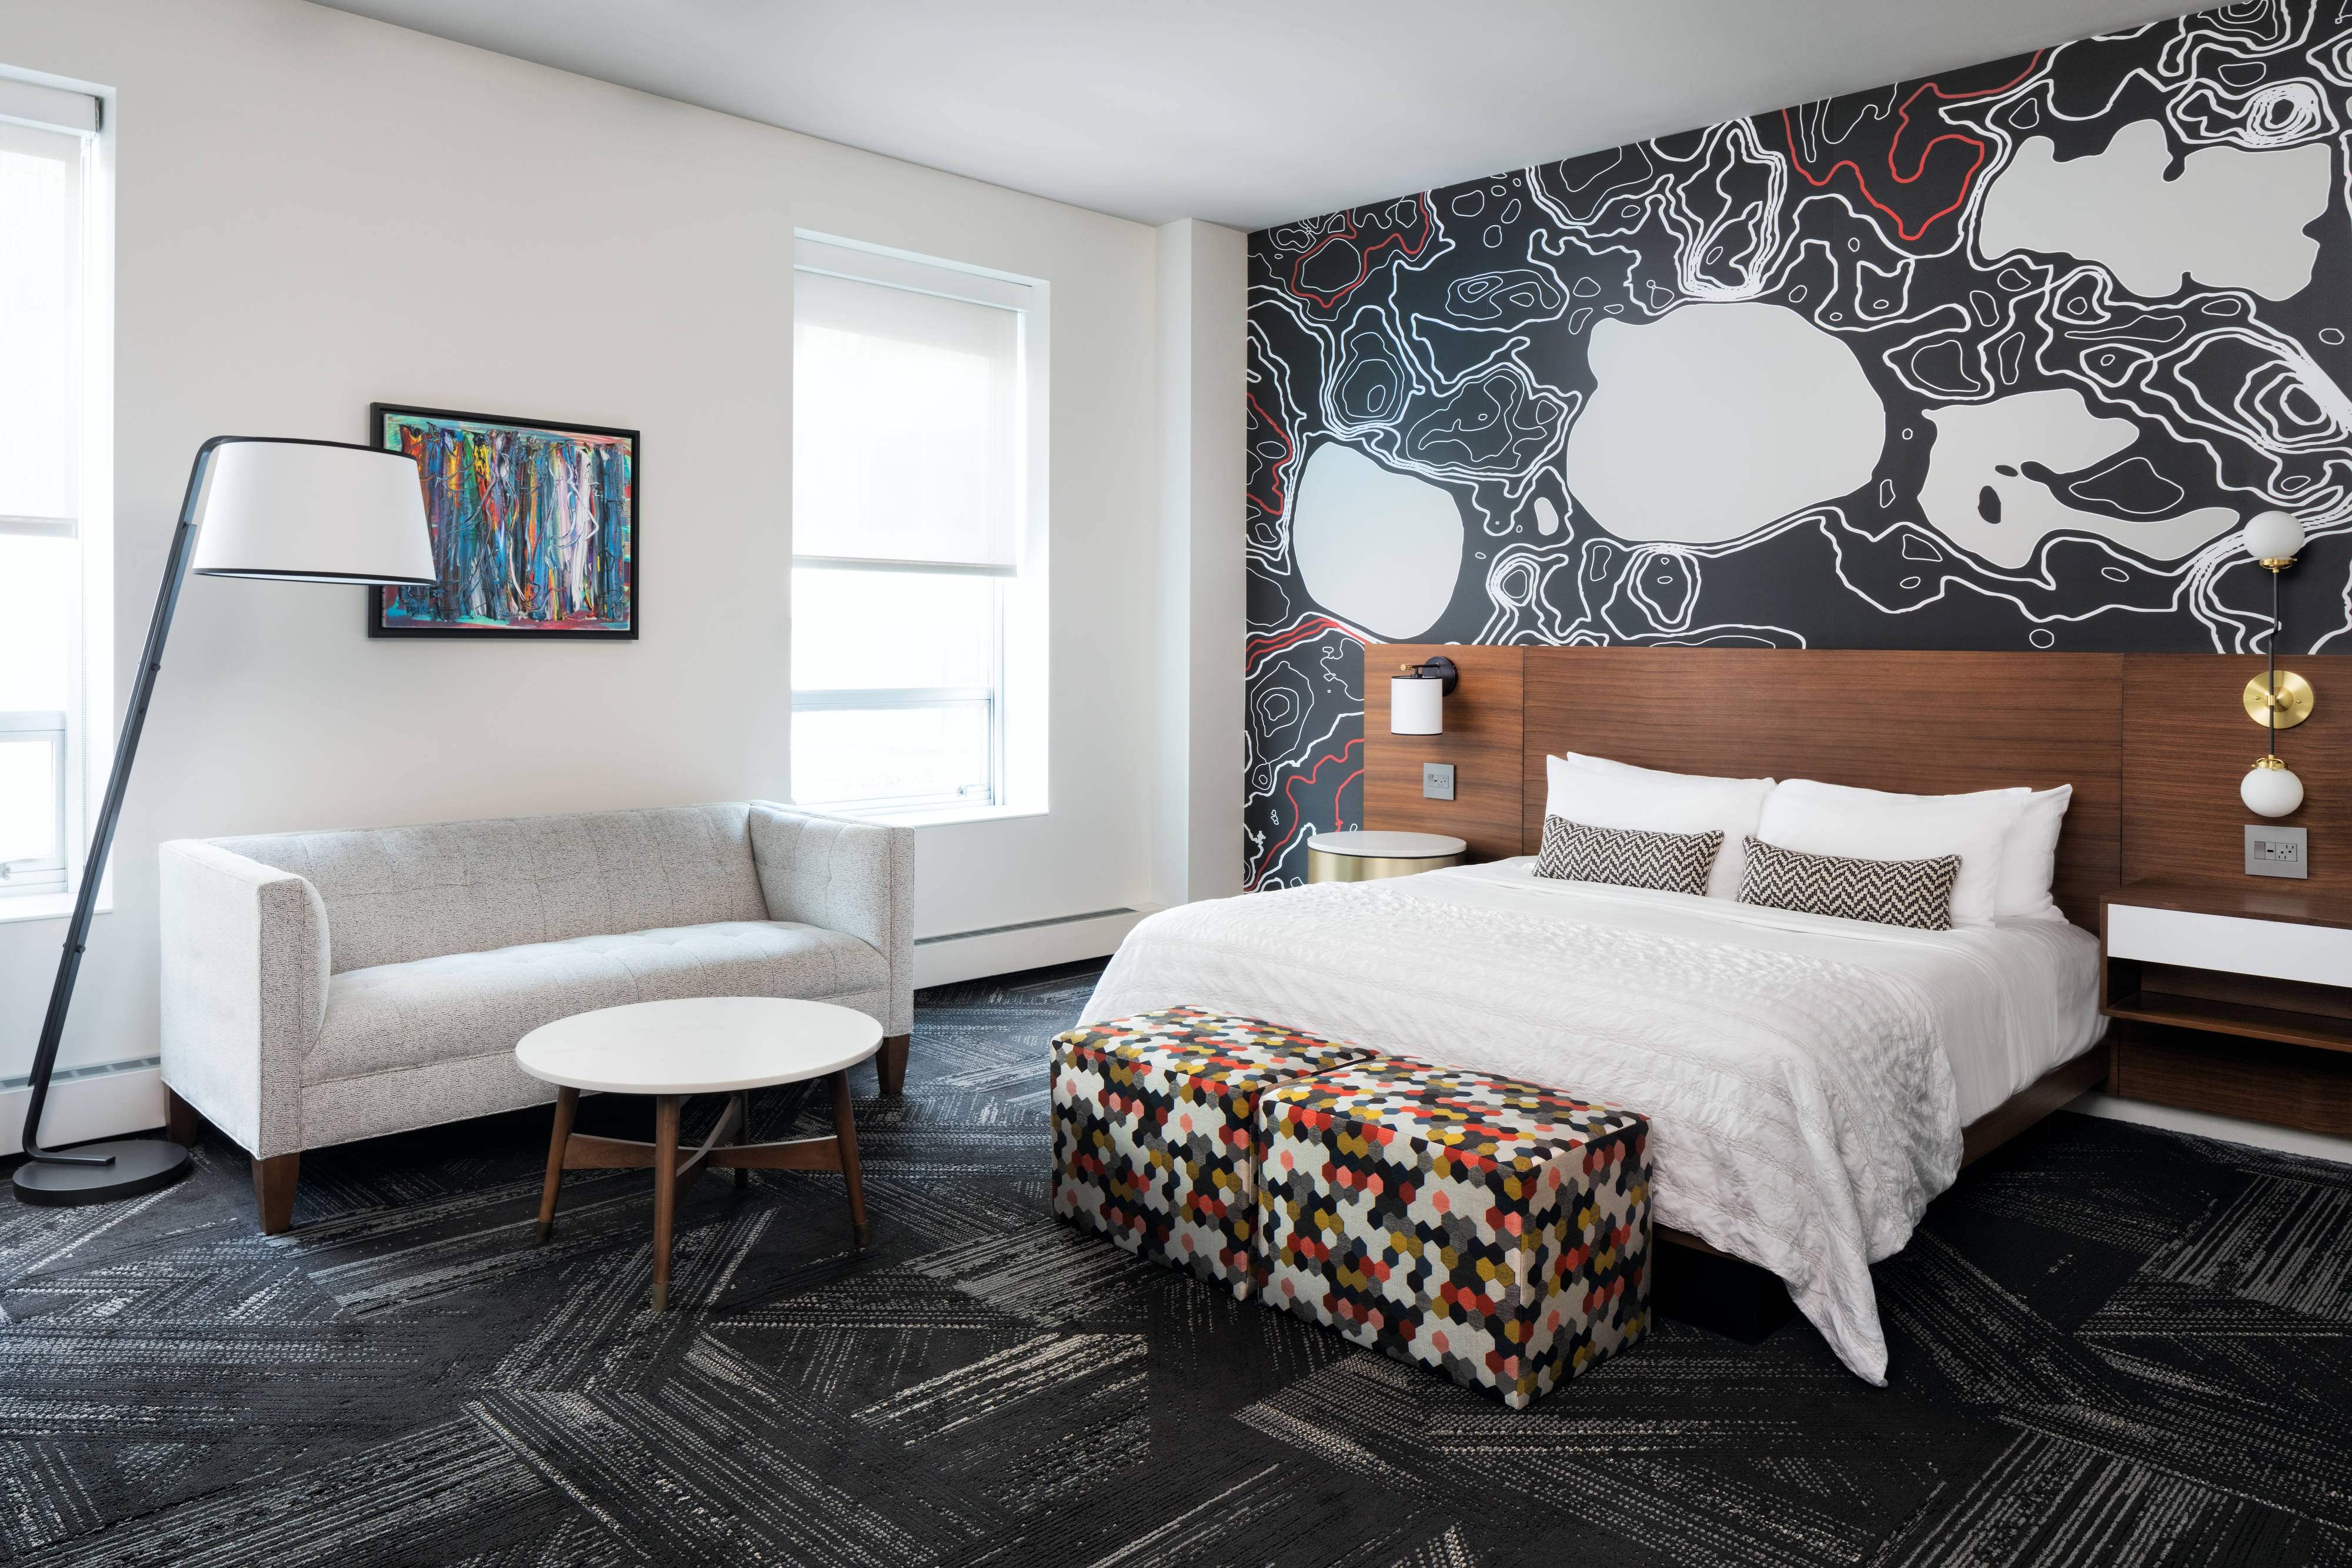 le méridien chambers minneapolis minneapolis spg